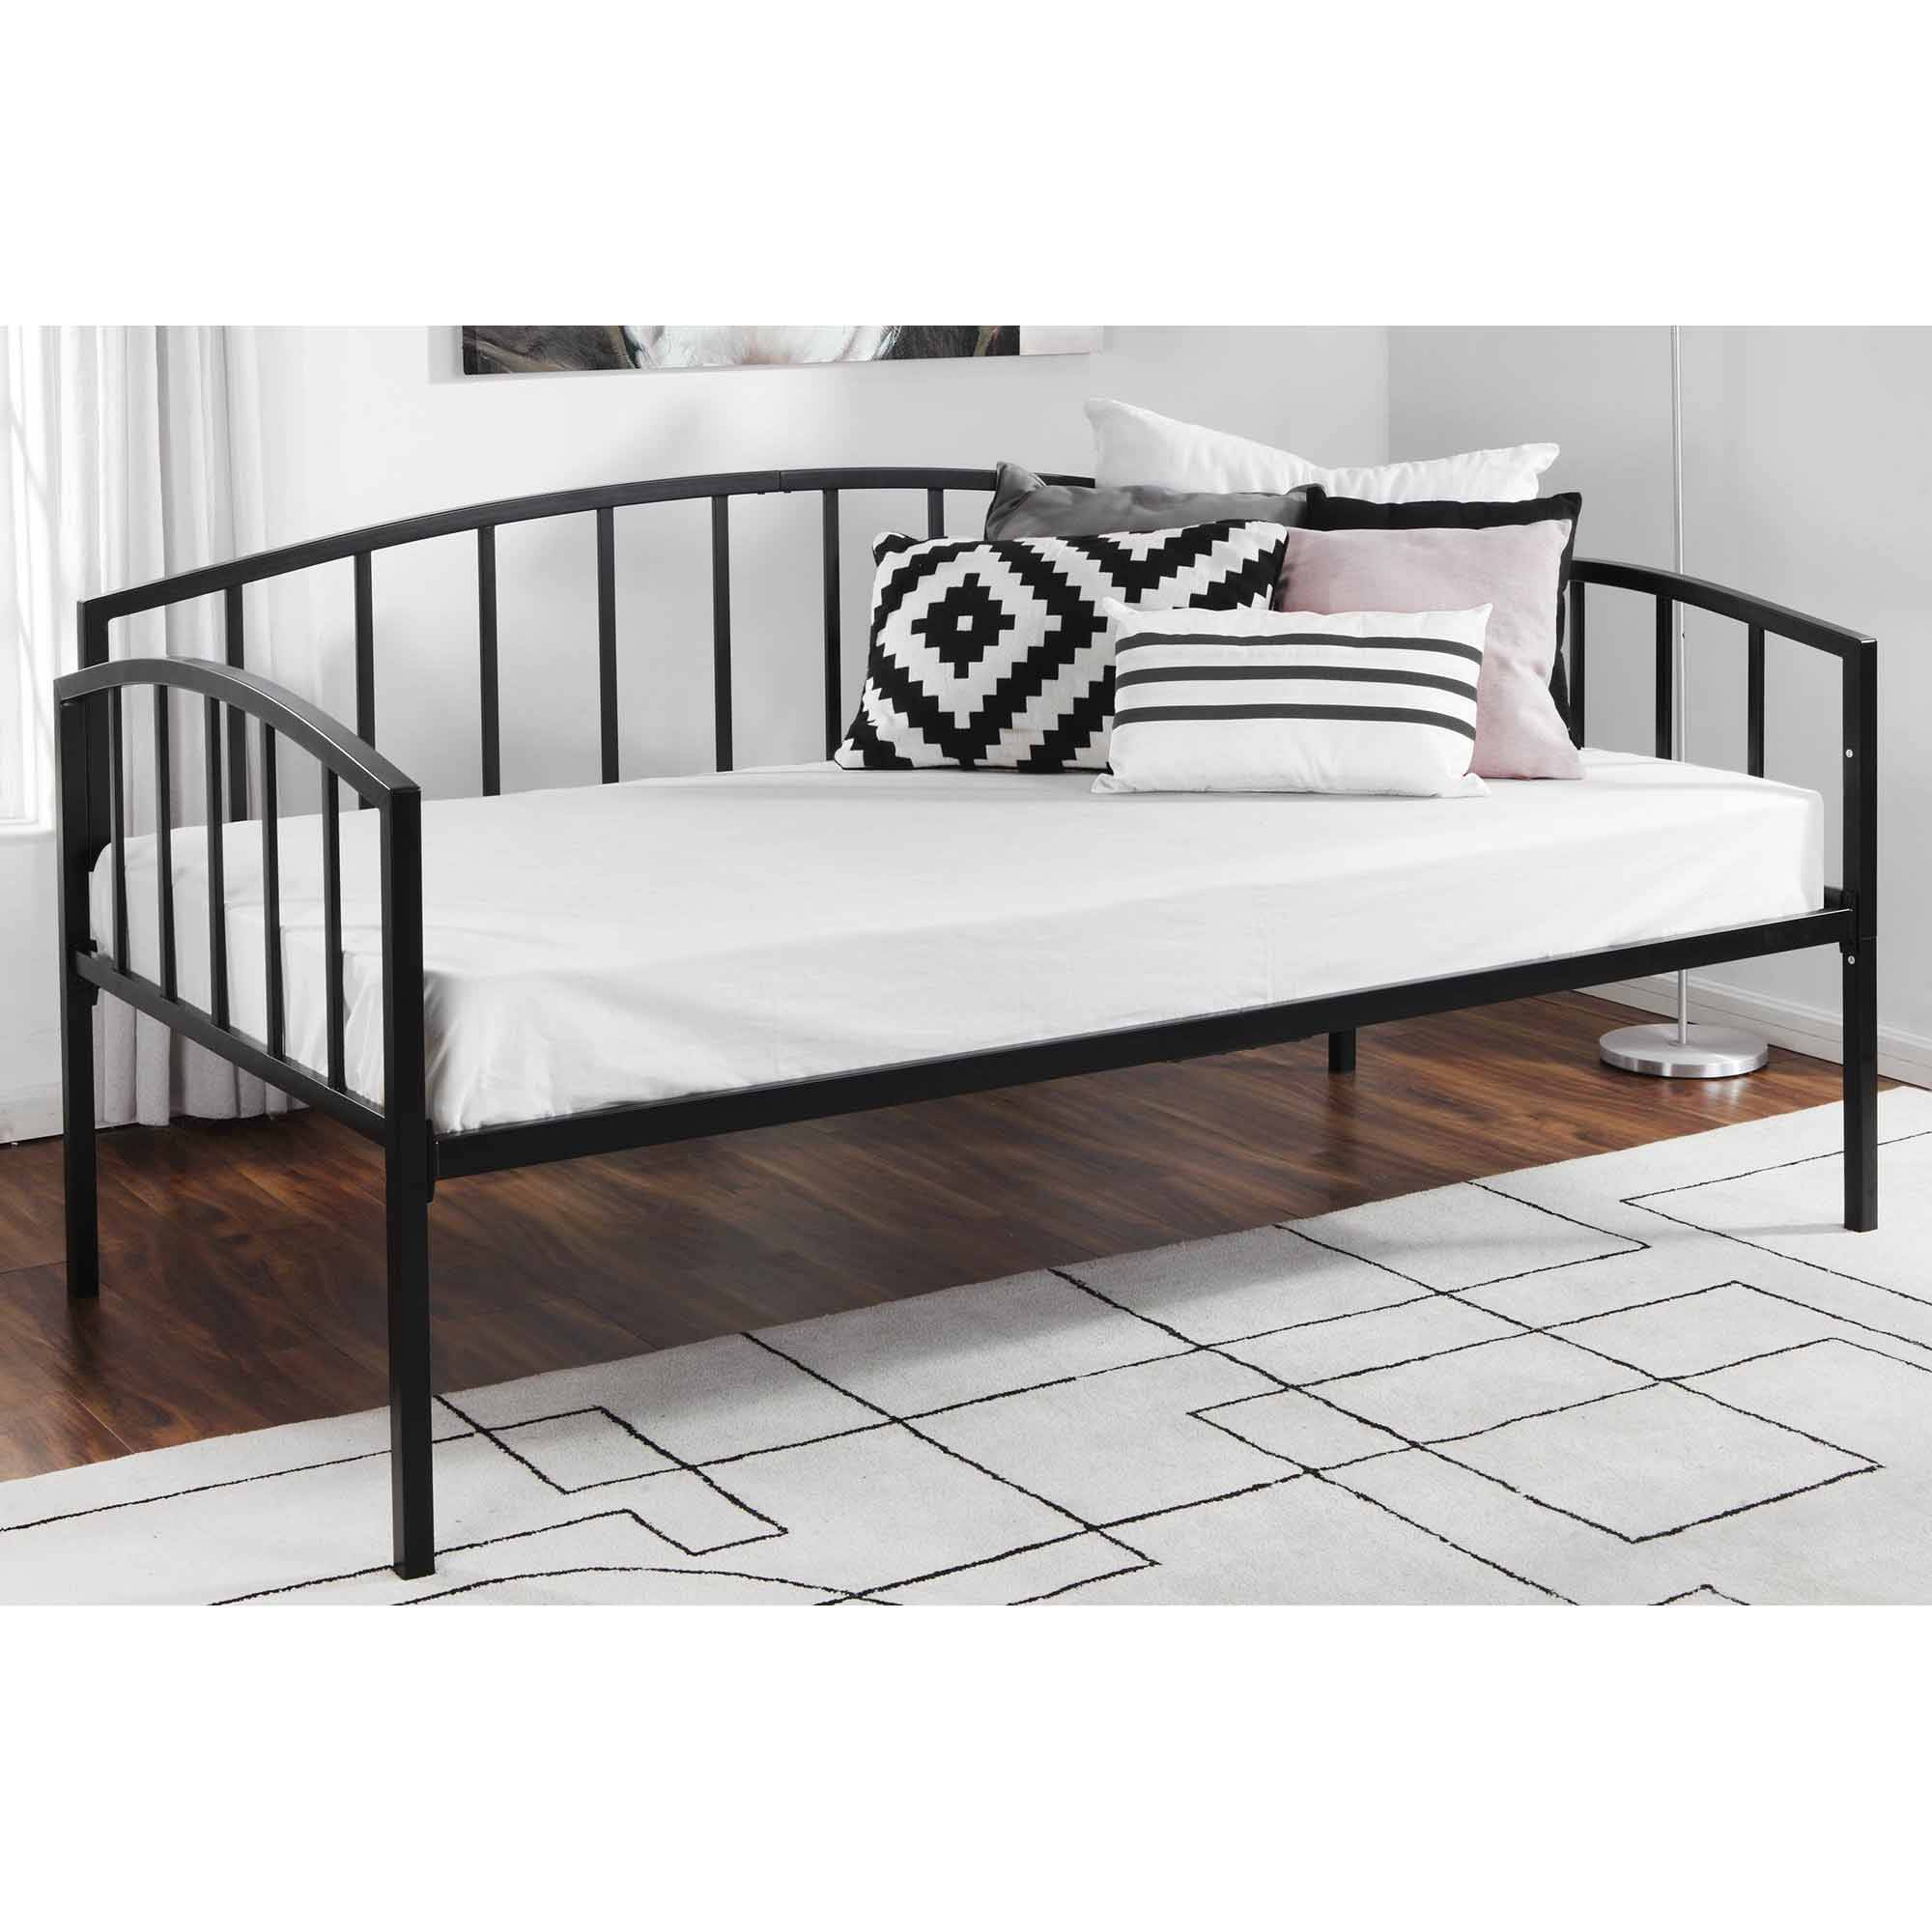 ship black vermont nursery futons products metal eng free frame futon details